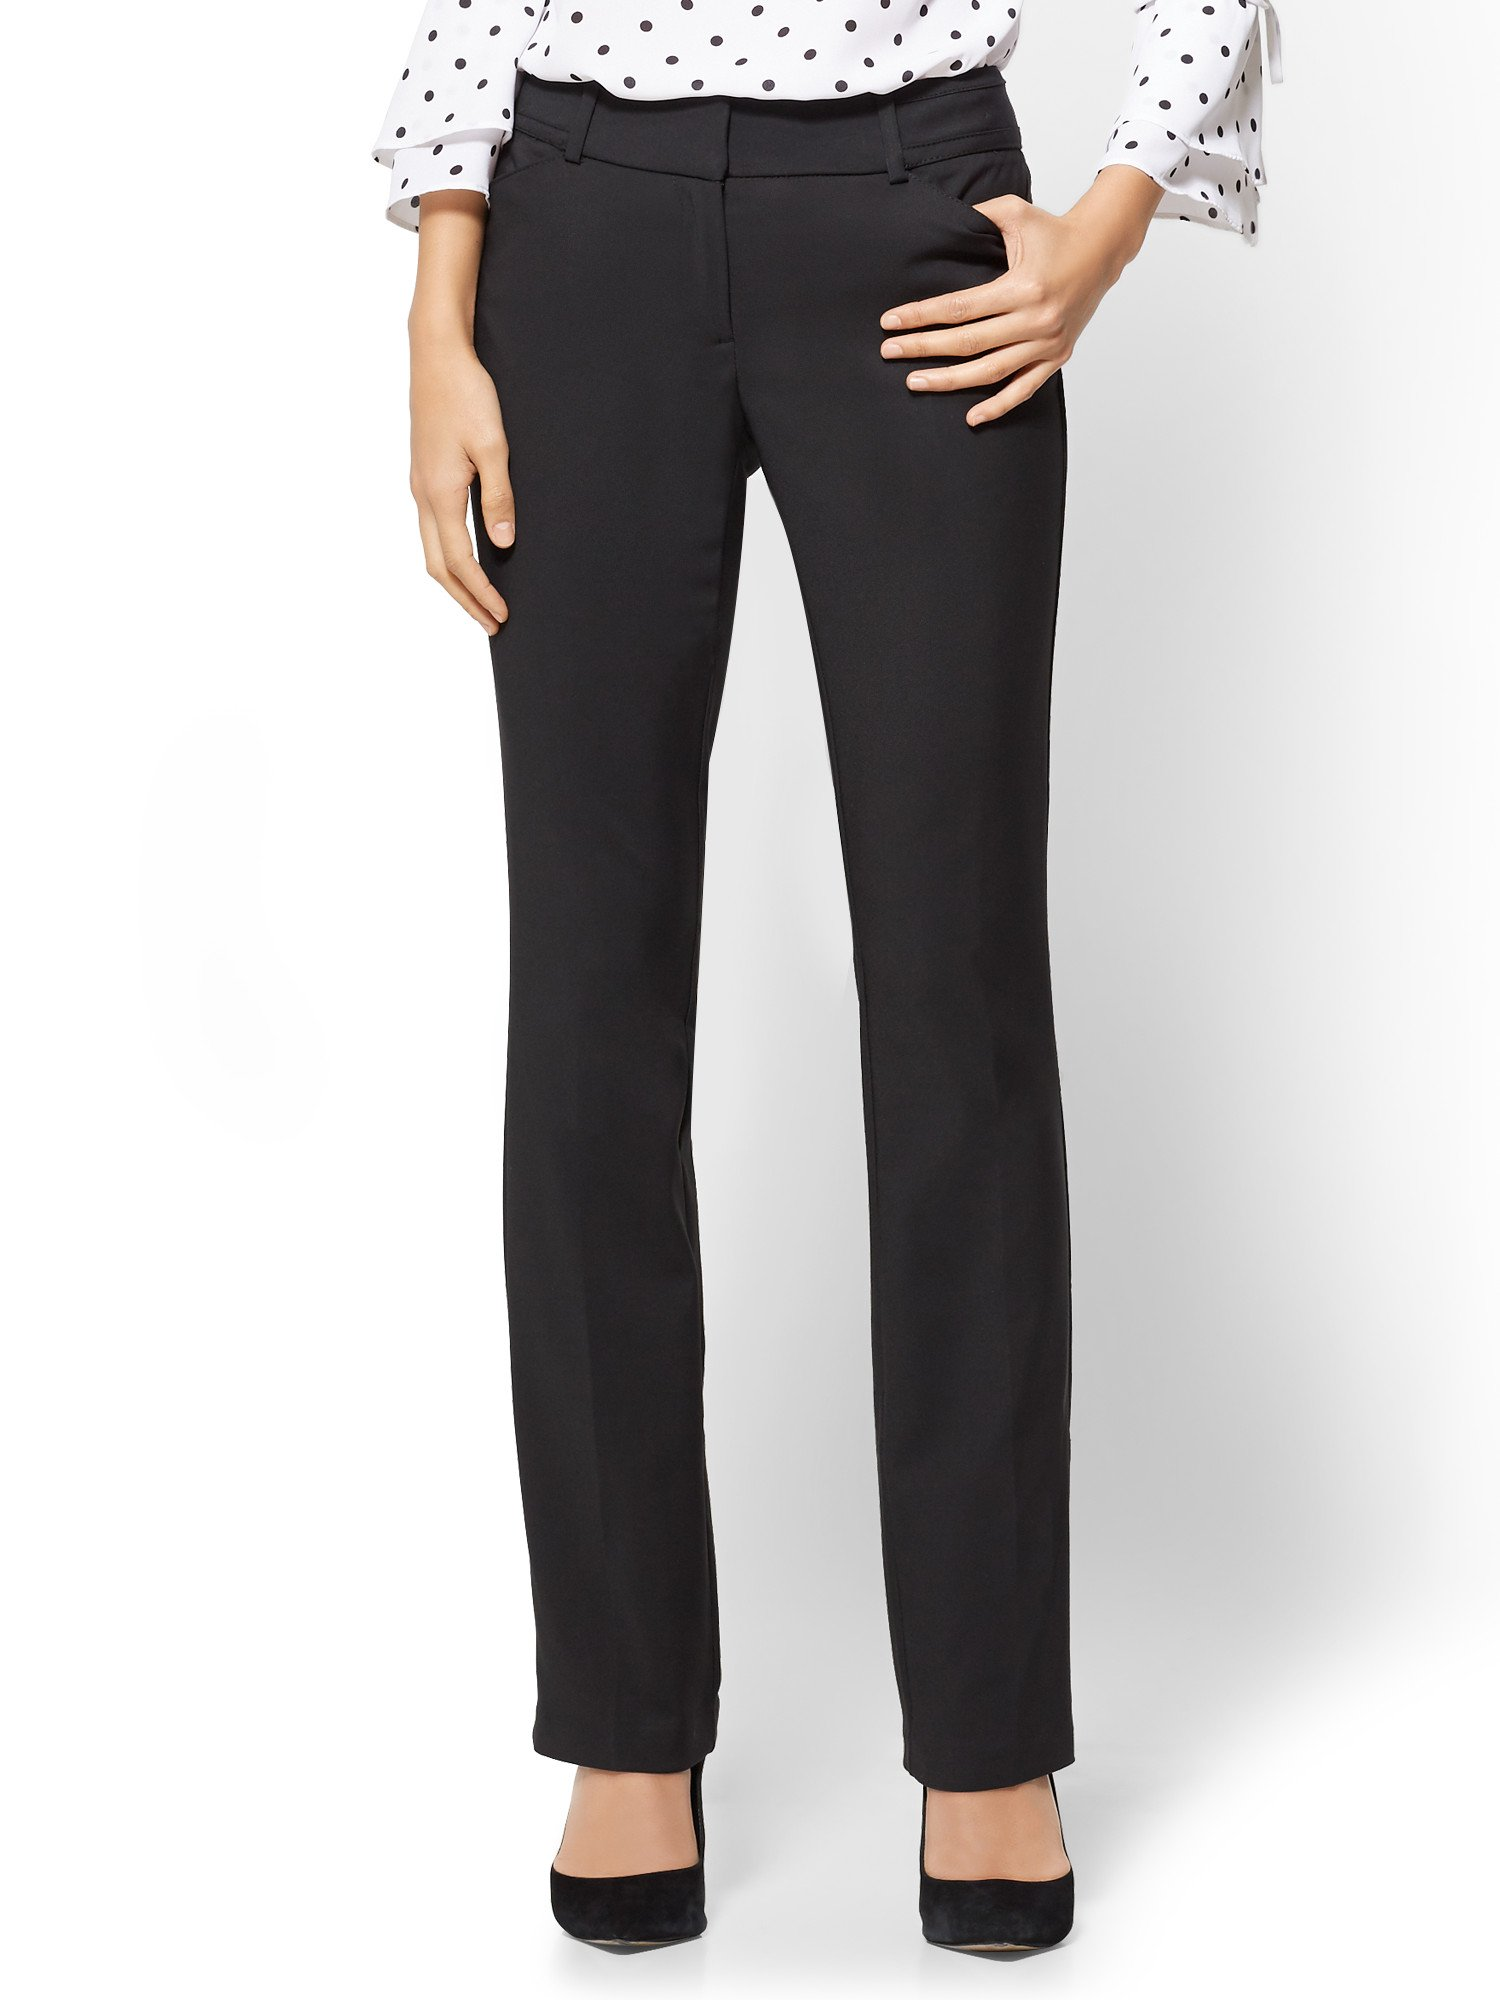 New York & Co. 7Th Avenue Petite Pant - Straight Leg - 12 Black